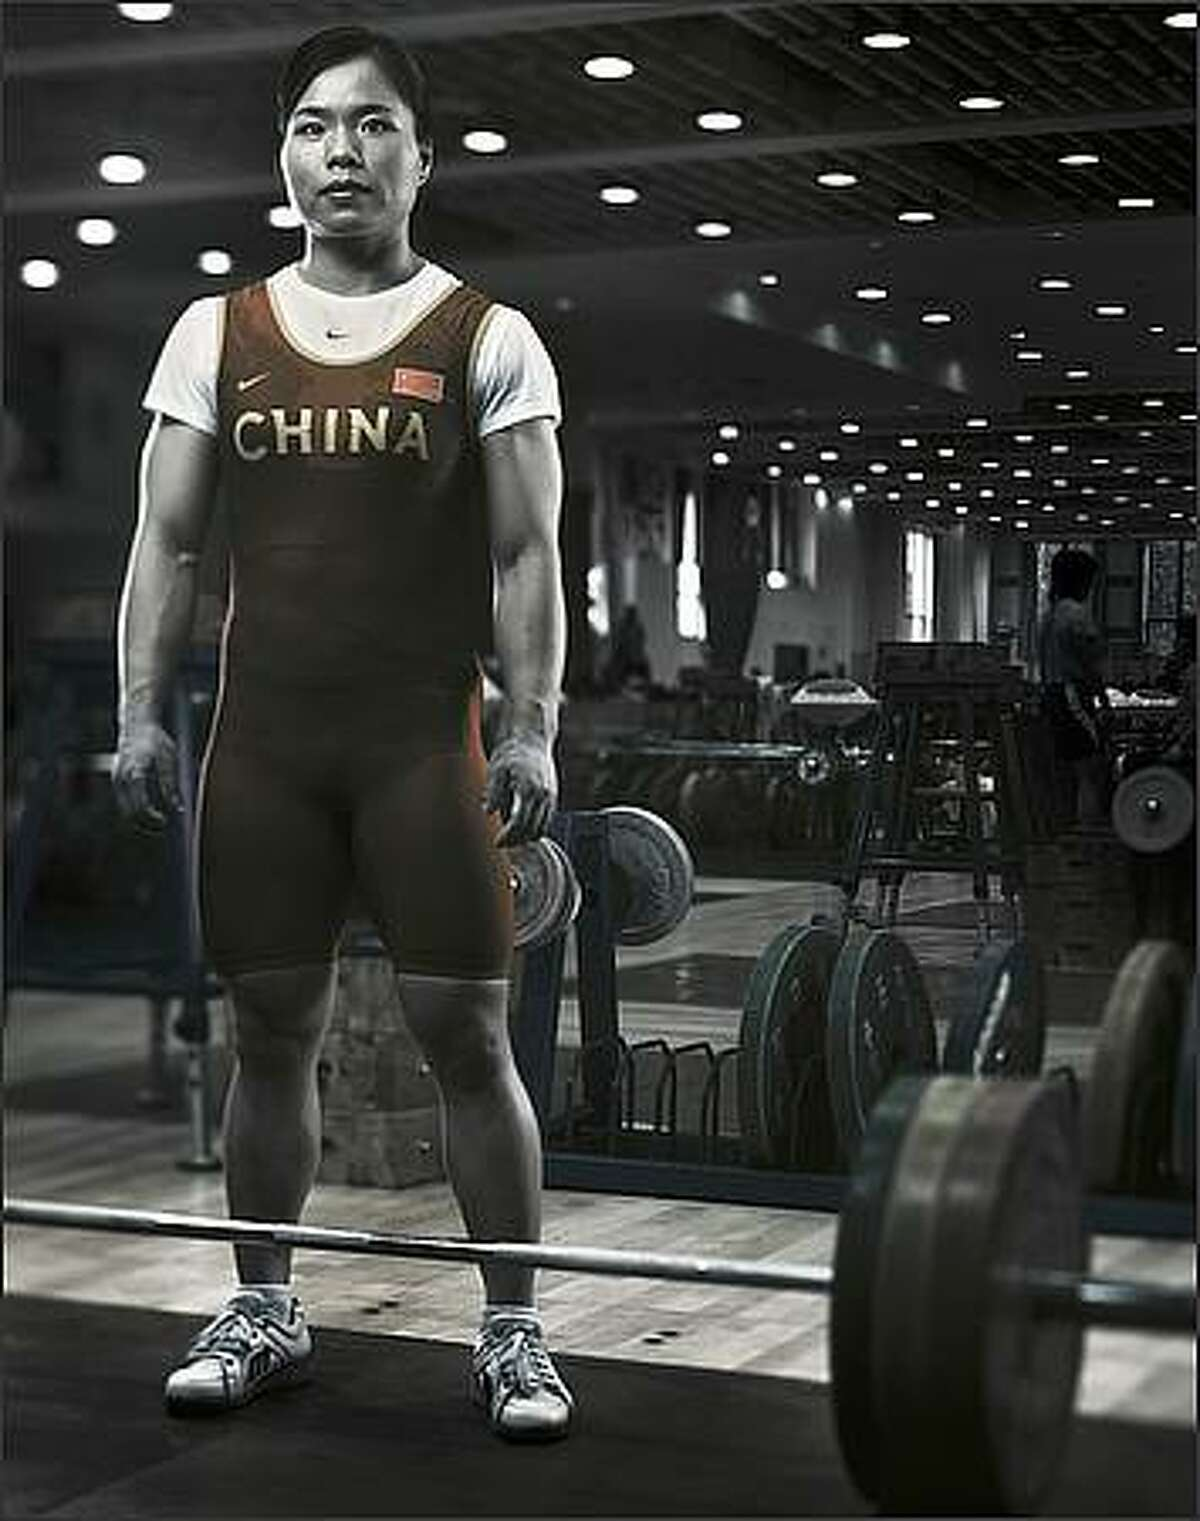 Chen Yanqing poses for a portrait shoot at the National Sports Training Centre in Beijing, China.